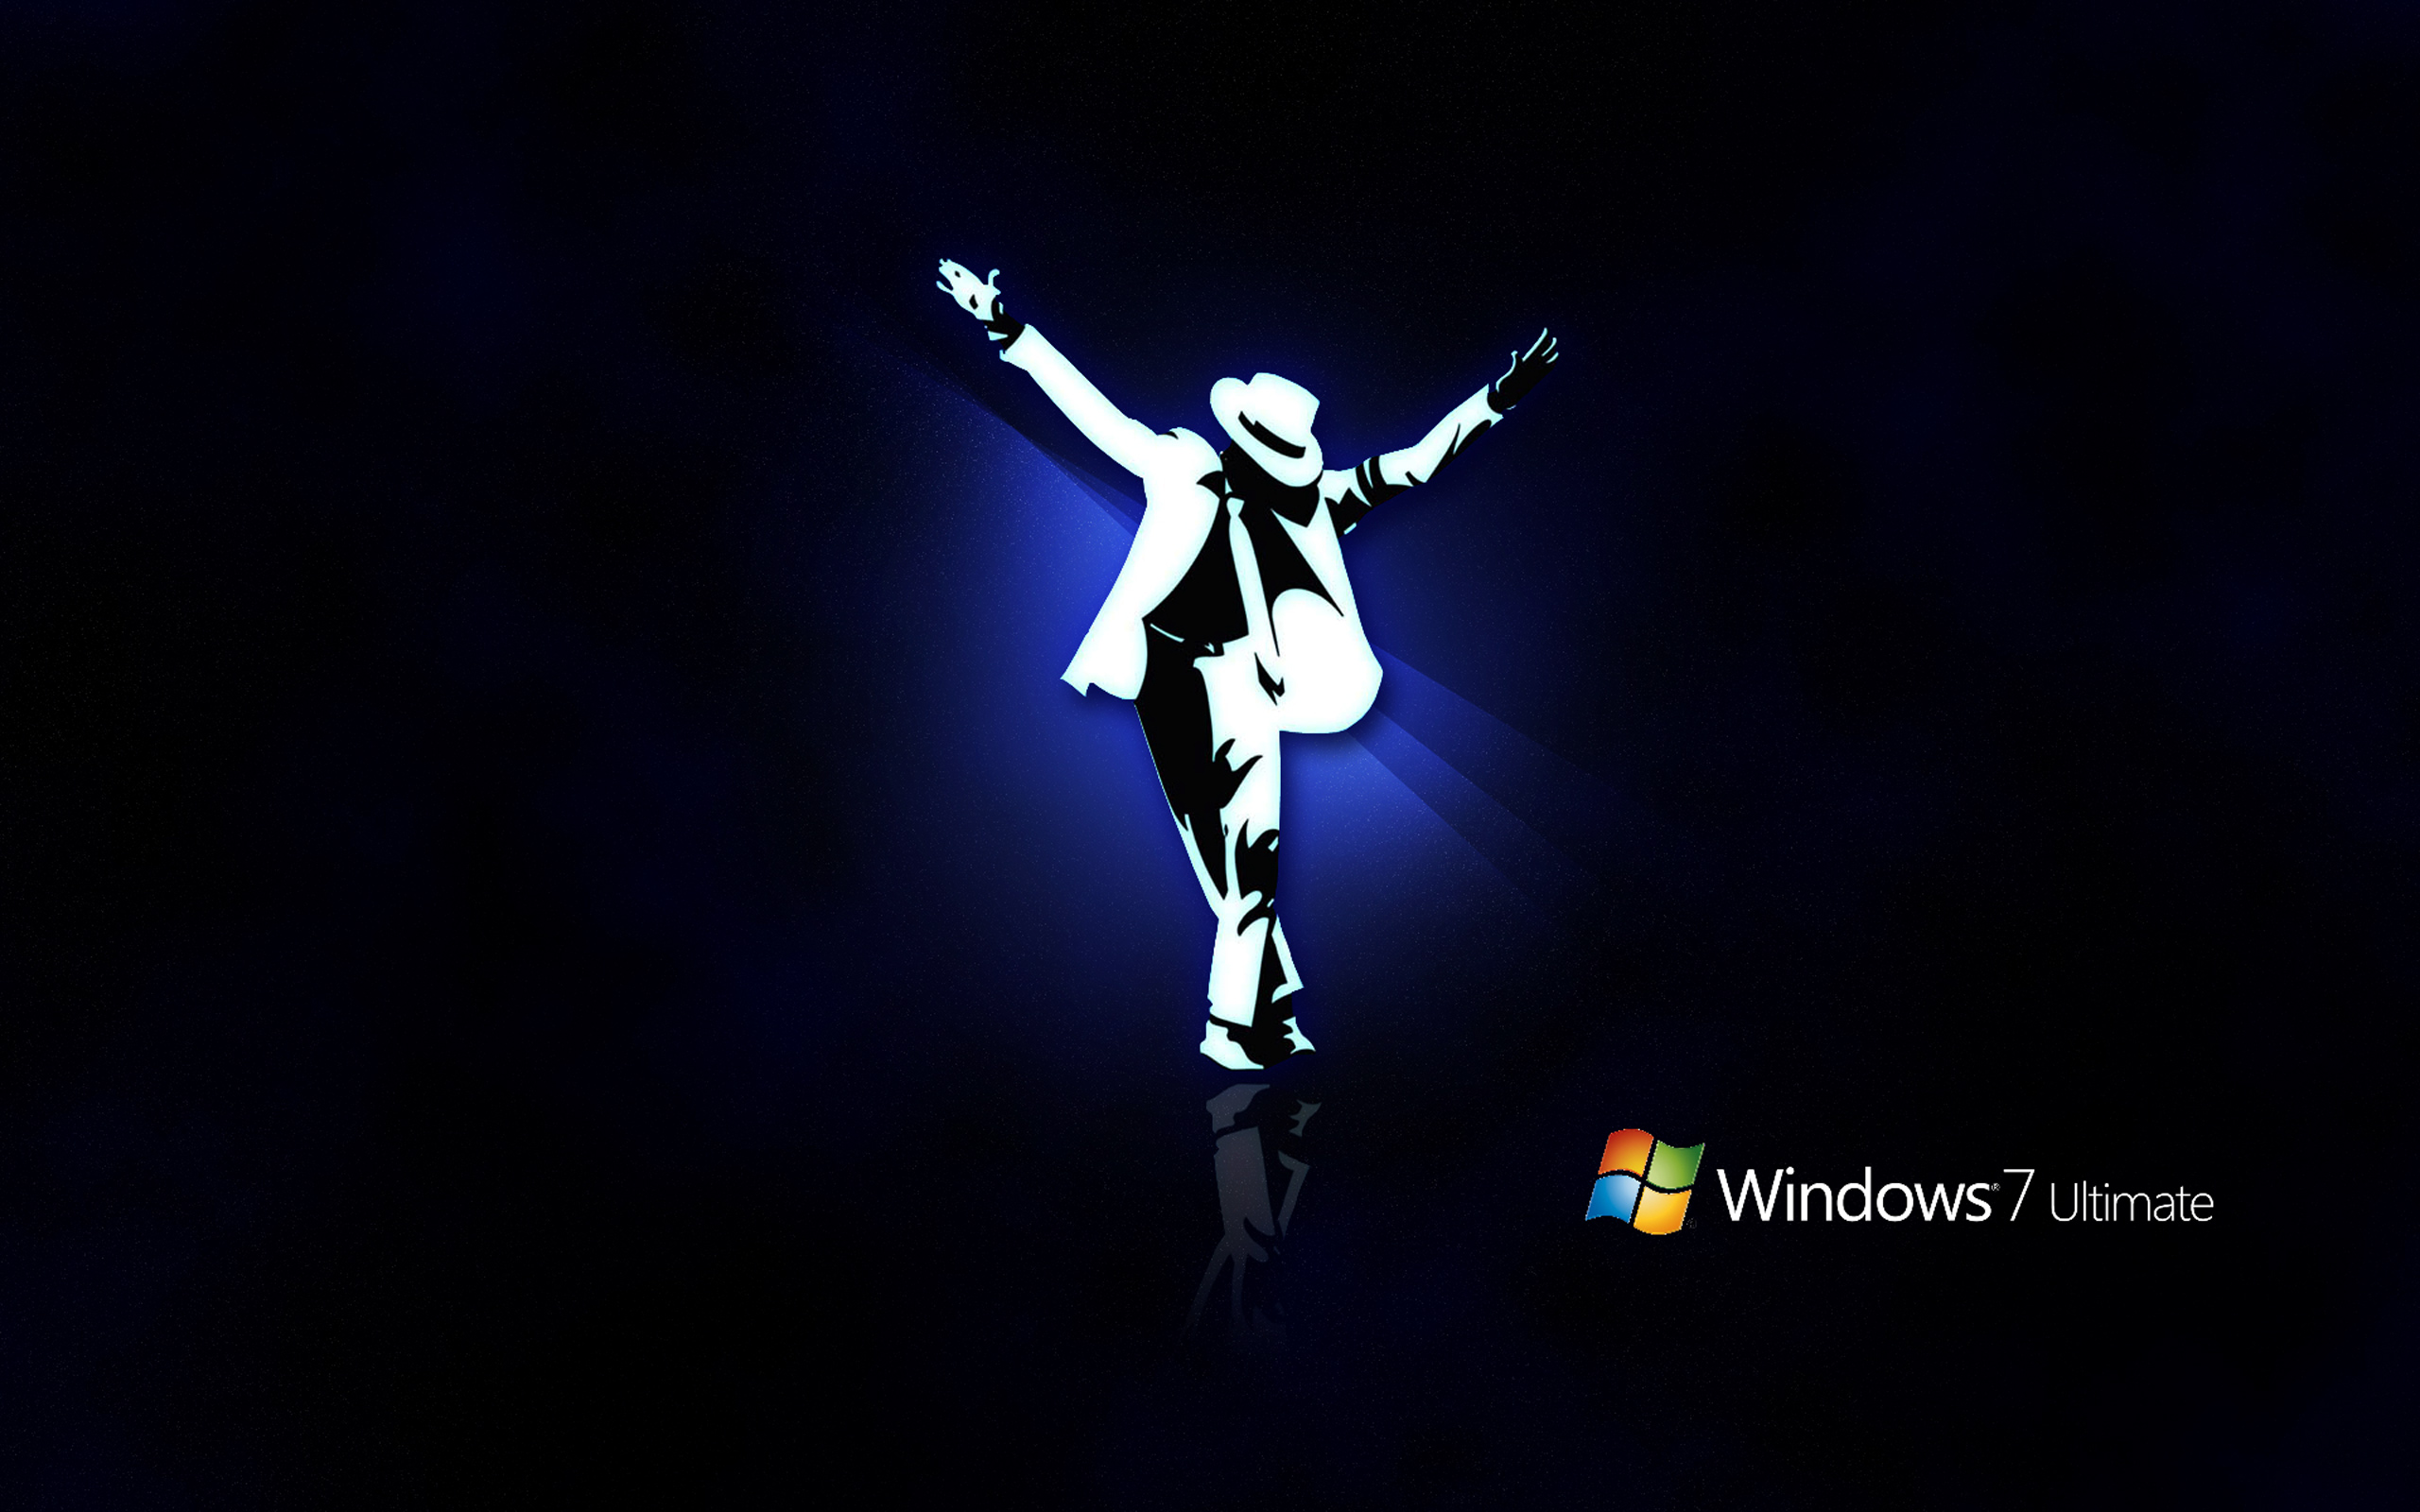 3D Wallpaper For Pc Windows 7